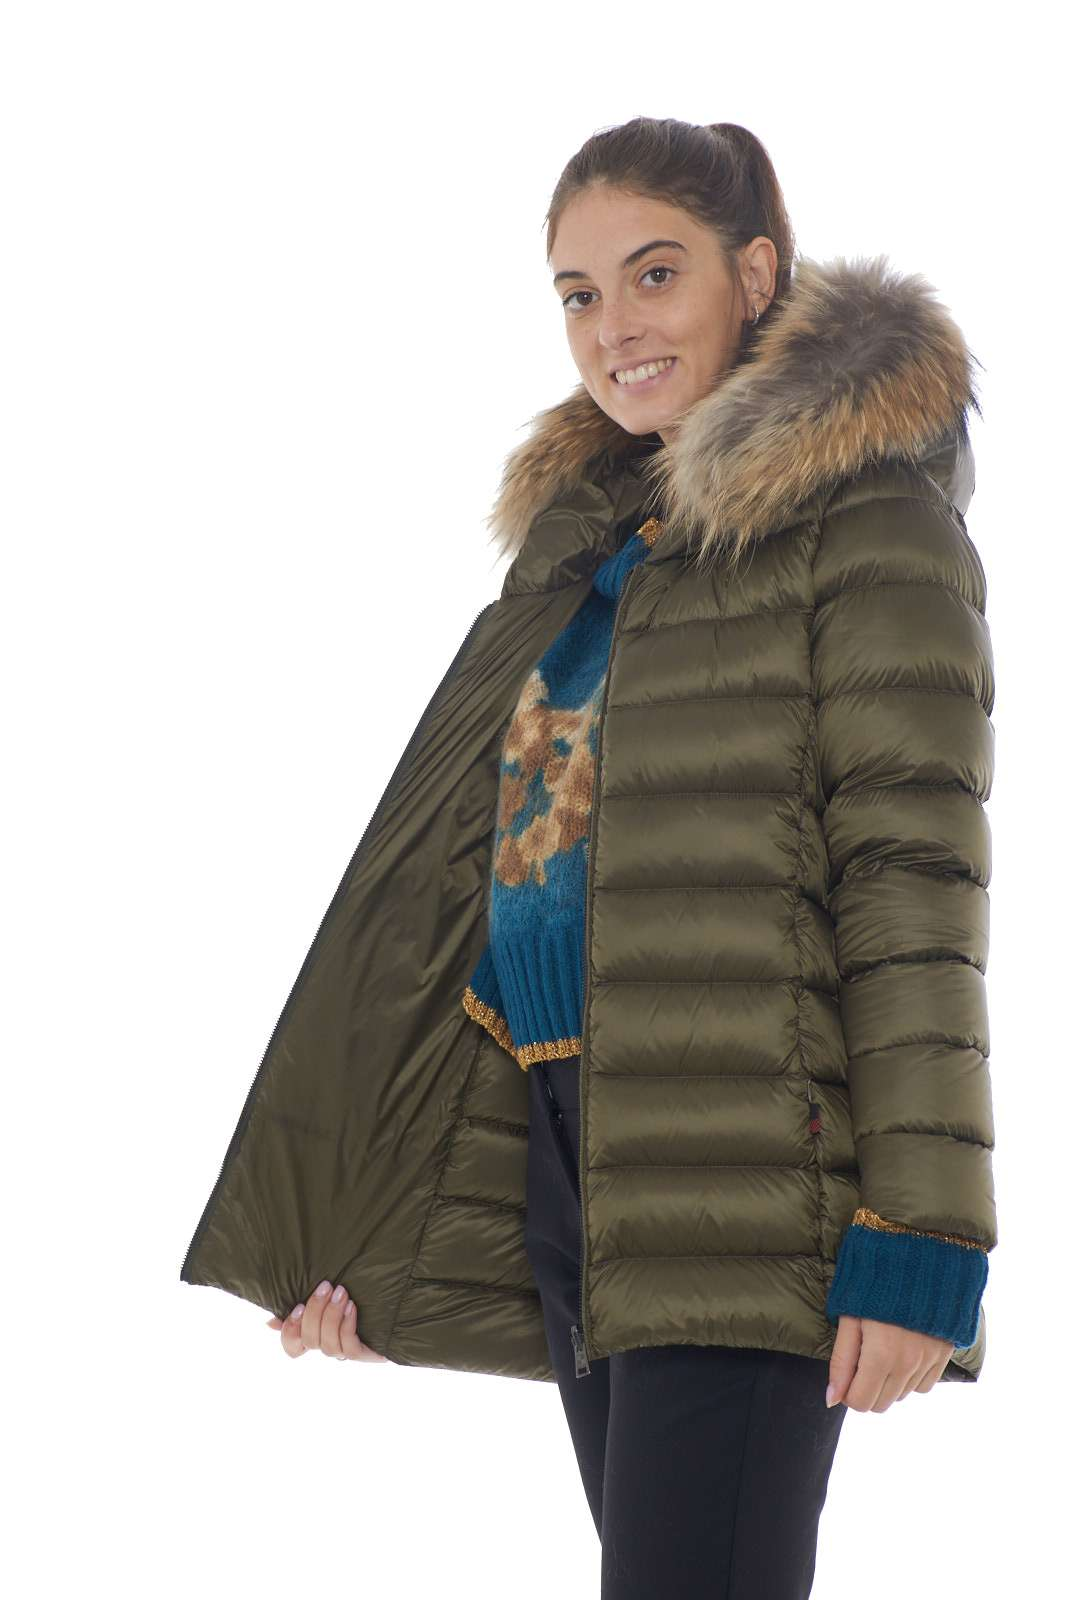 https://www.parmax.com/media/catalog/product/a/i/AI-outlet_parmax-parka-donna-Woolrich-WWCPS2760-F.jpg